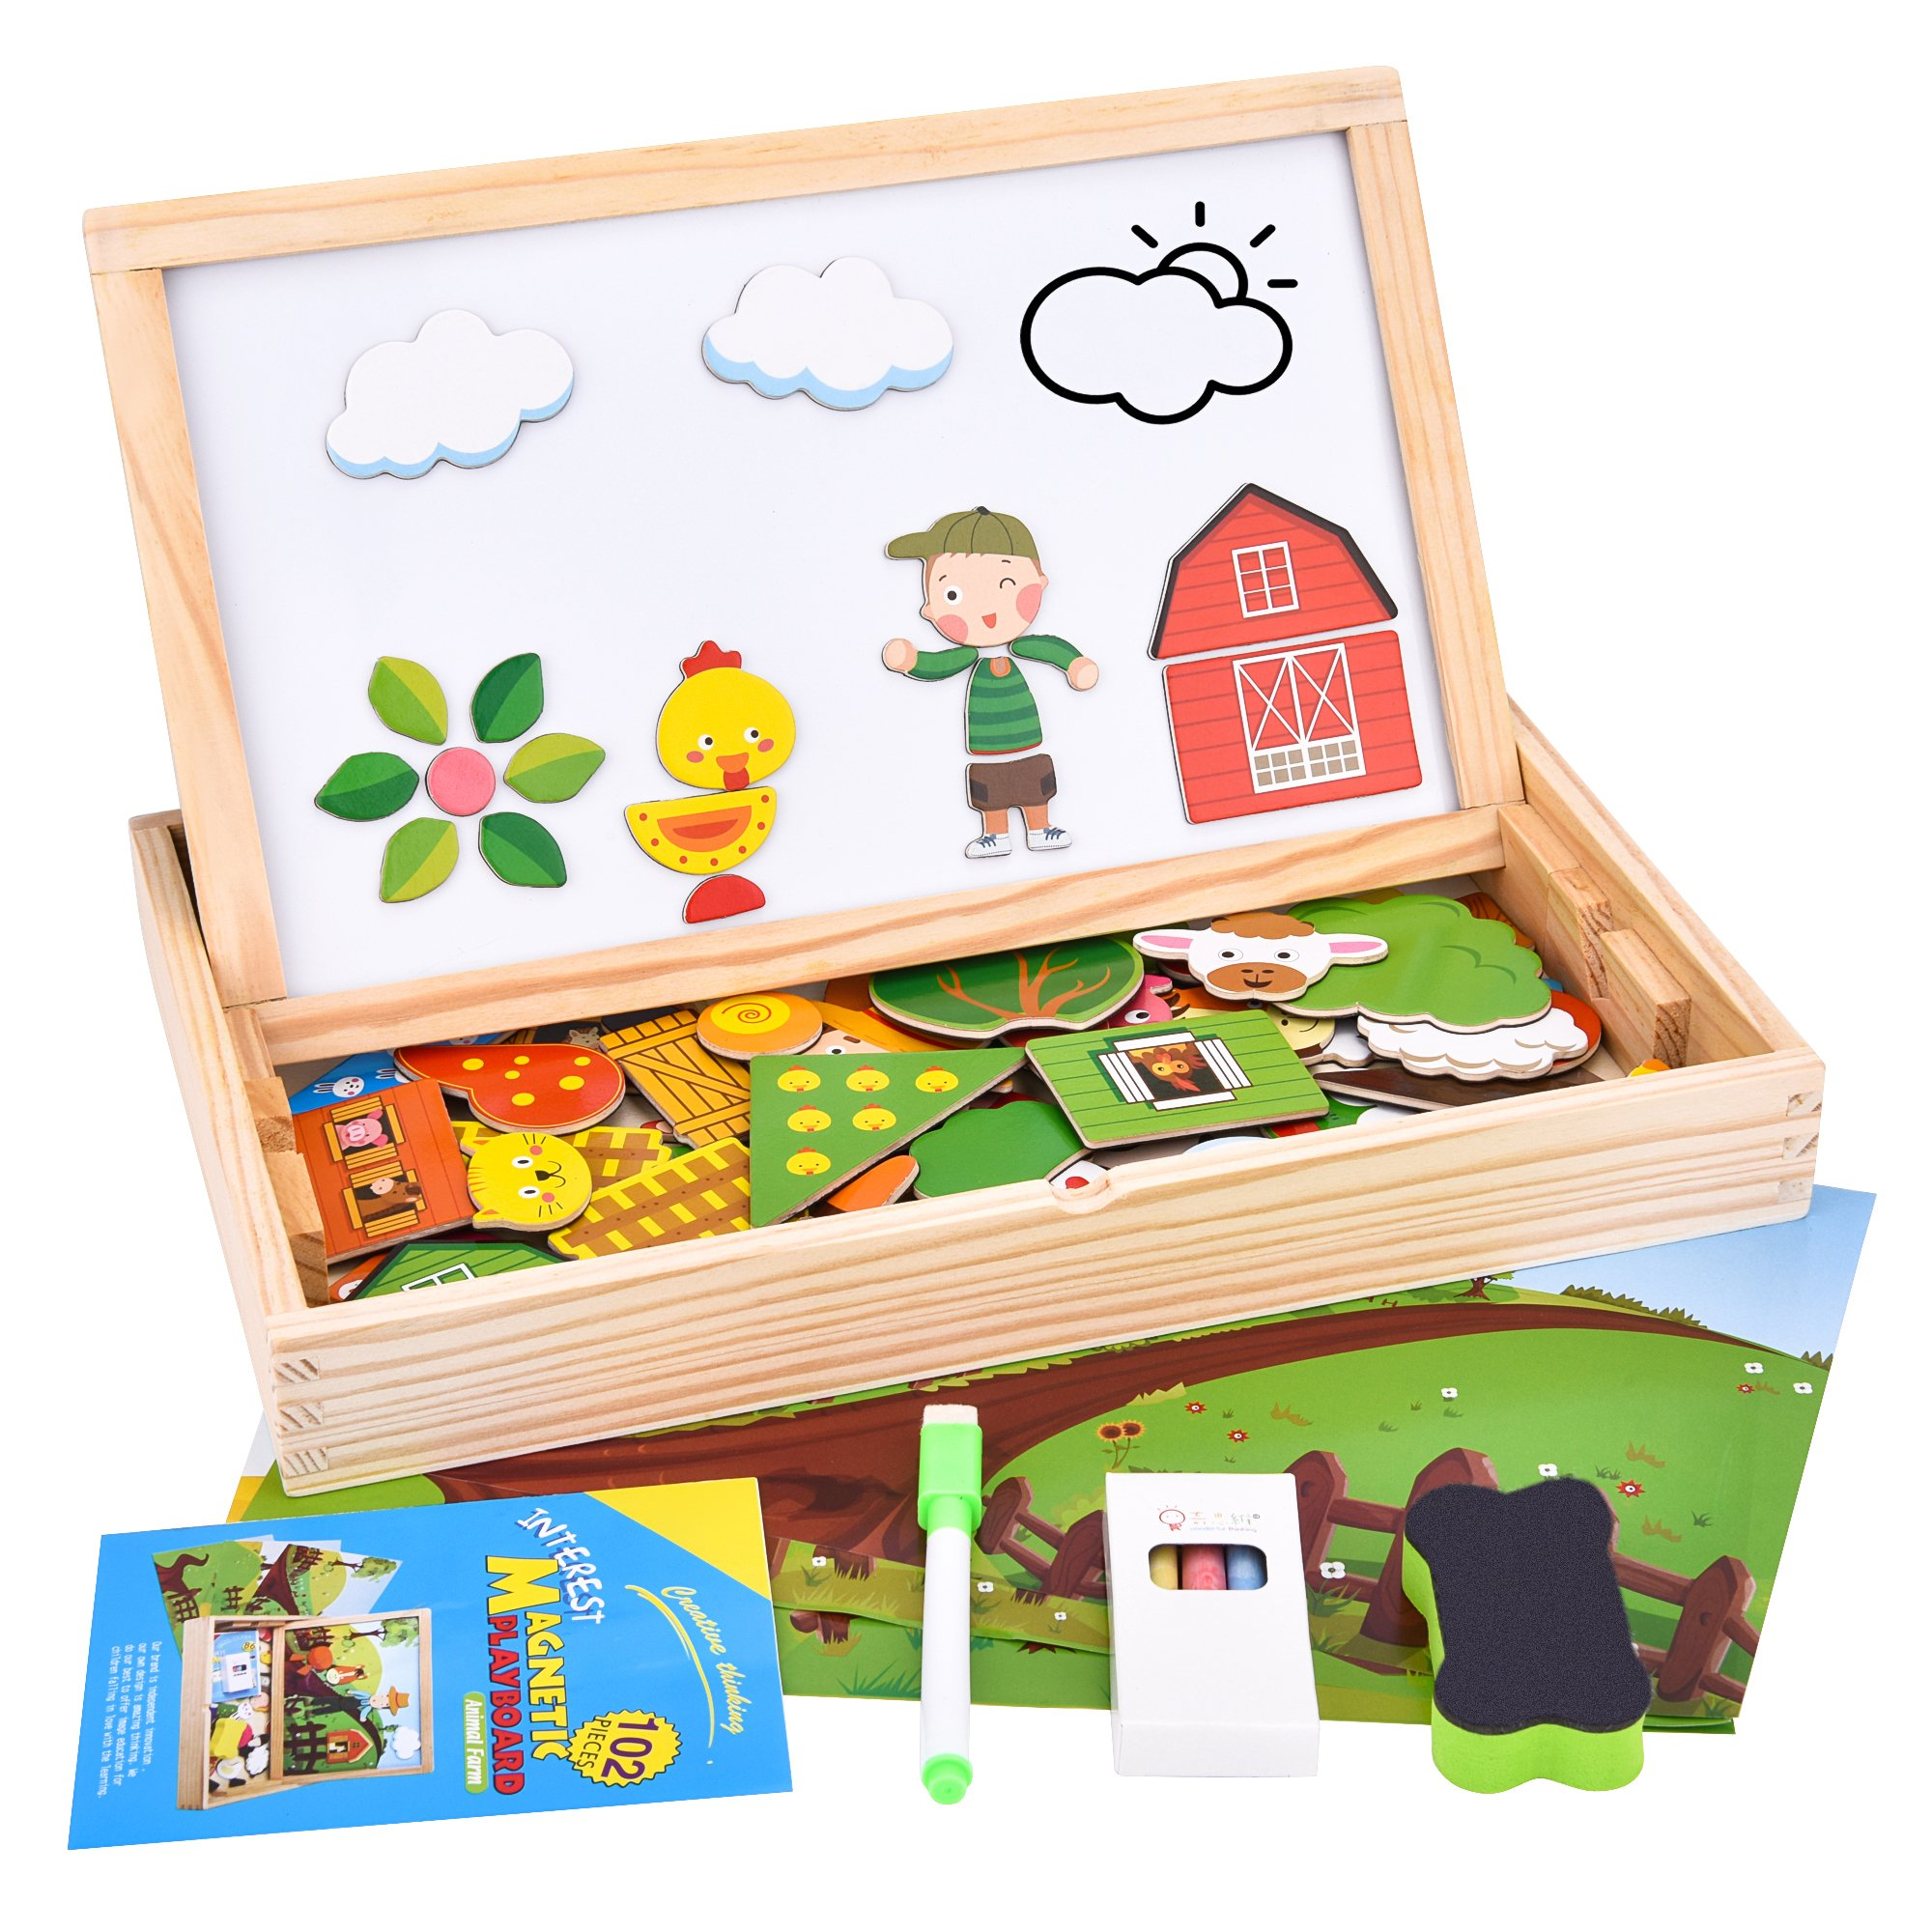 Wooden Magnetic Puzzle, 102 Pieces Animals Learning Educational Wooden Jigsaw Puzzle Toys, Puzzle Games Double Sided Magnetic Drawing Board for Kids with 3 Background Cards (Animal Farm)